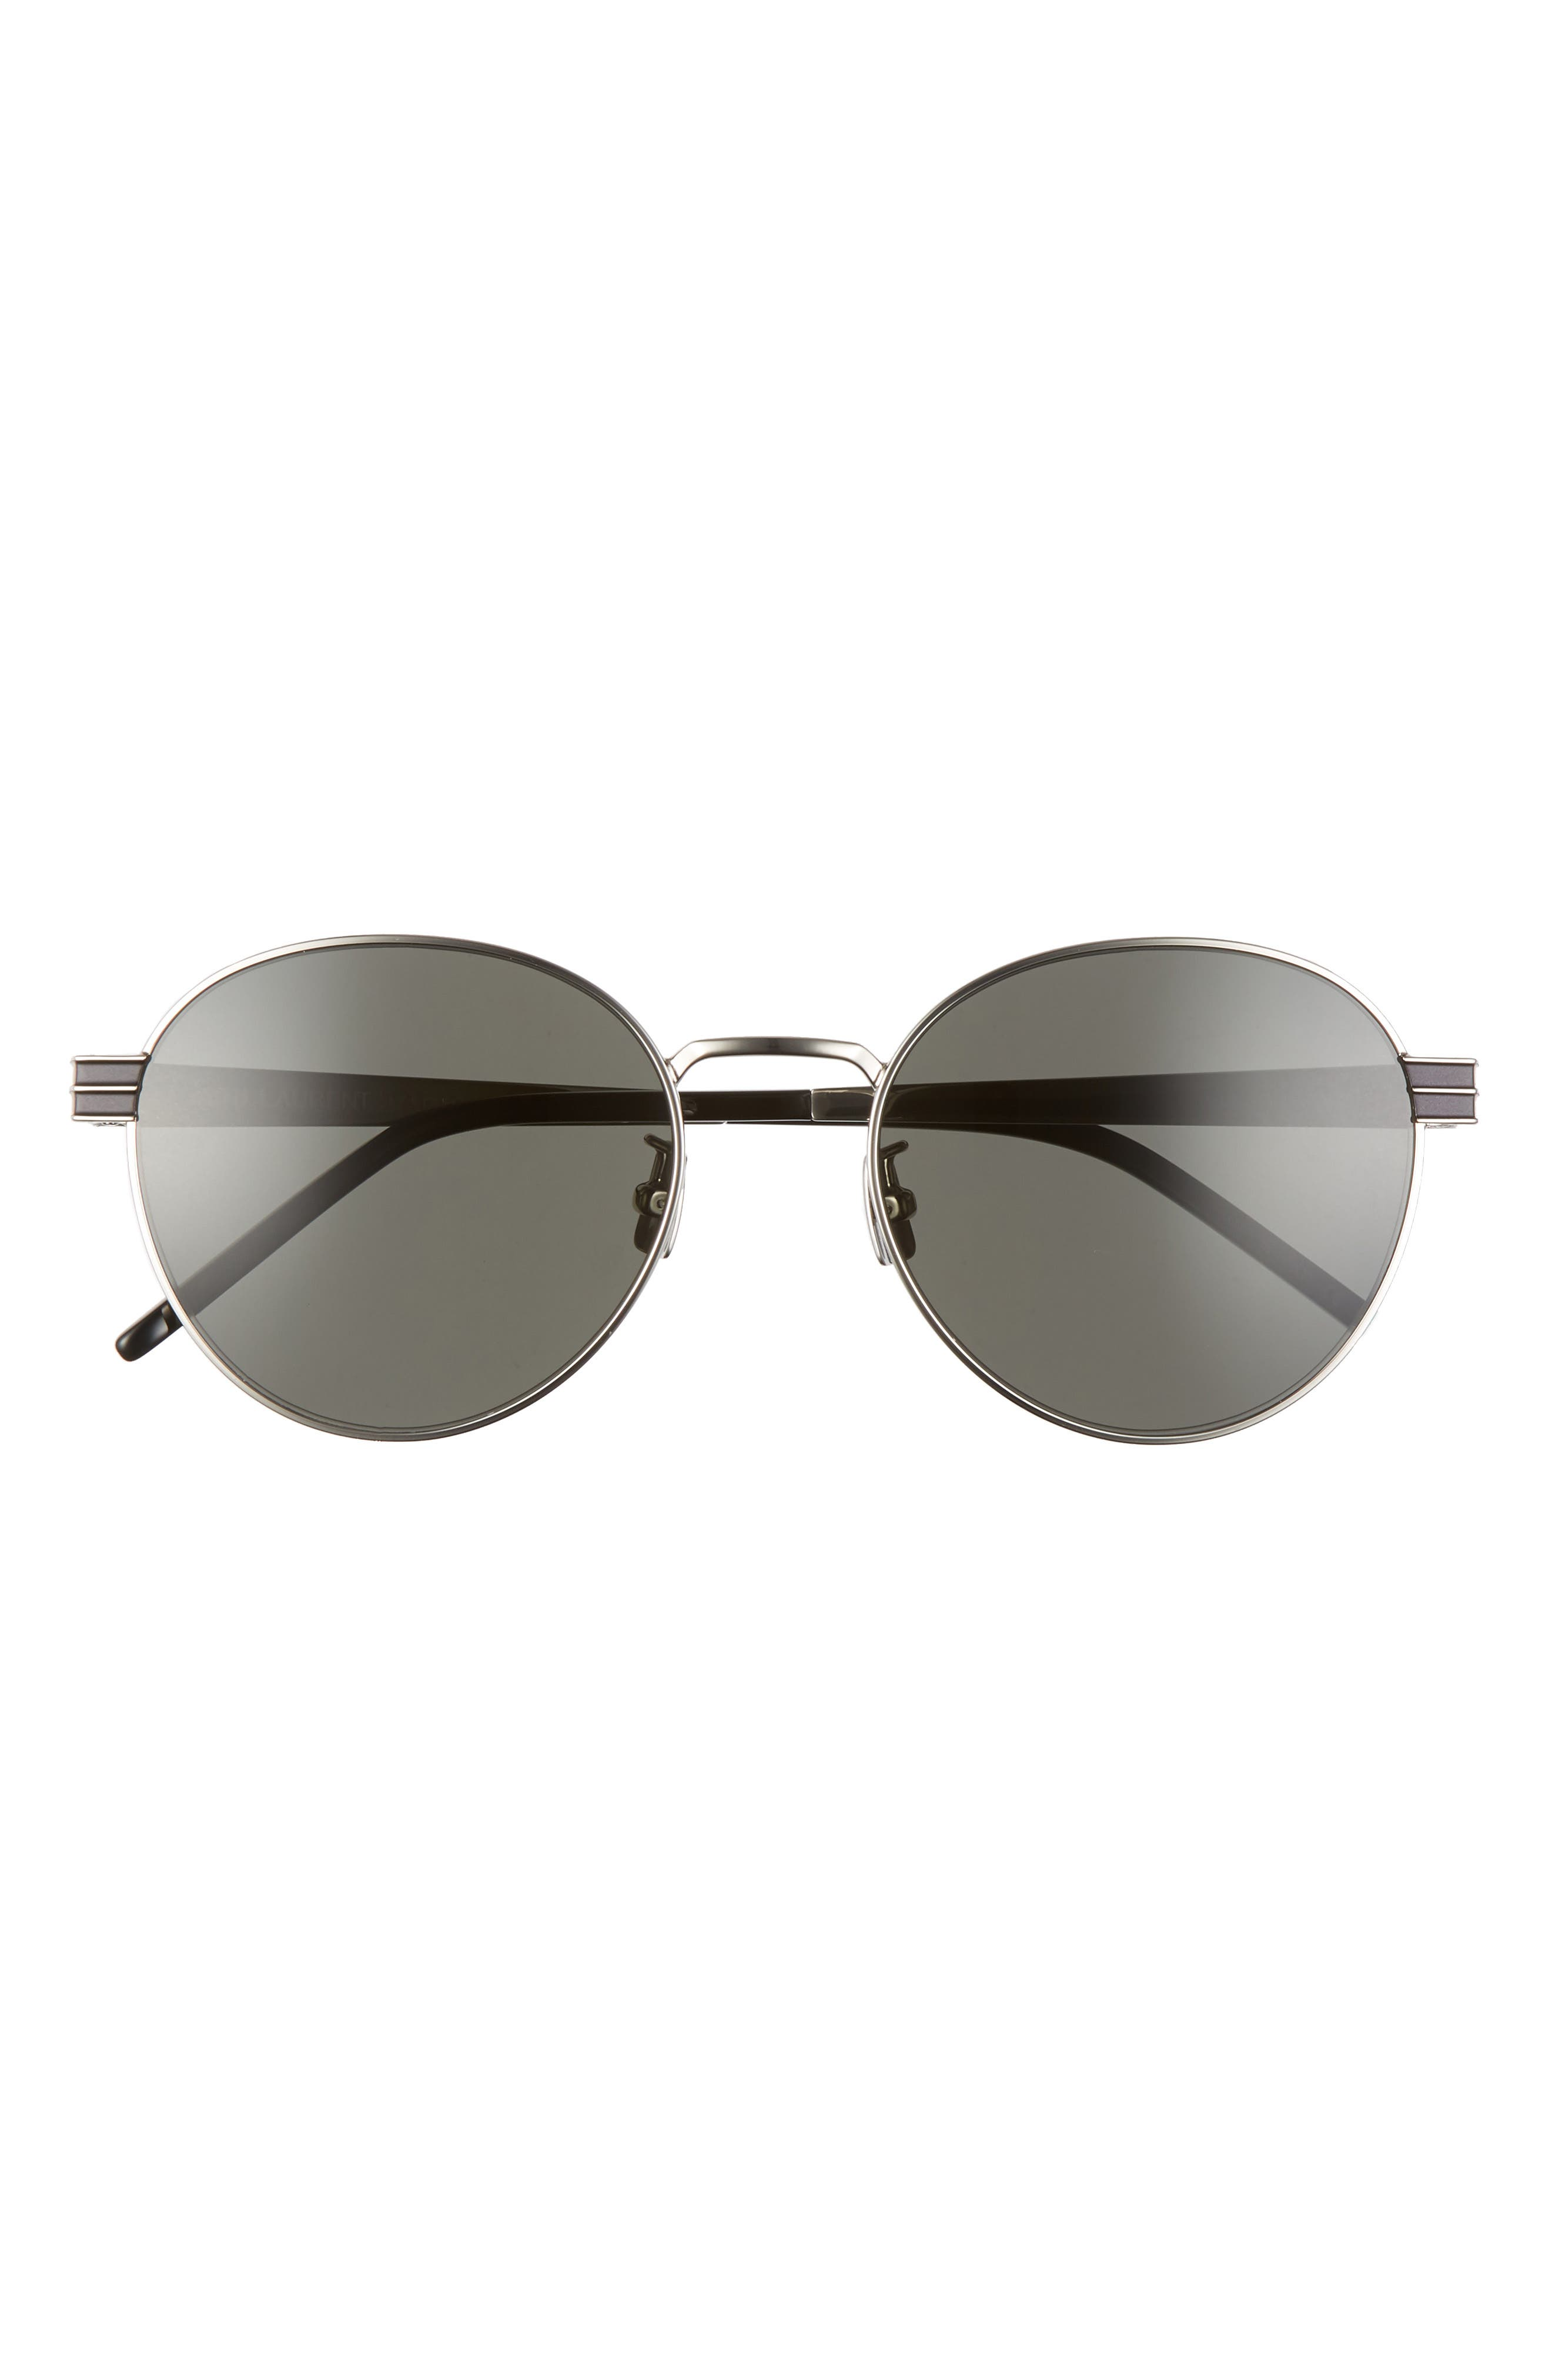 Polarized sunglasses cut the glare and ensure you sail into sunny days with timeless style. Style Name: Saint Laurent 55mm Oval Sunglasses. Style Number: 5991944. Available in stores.